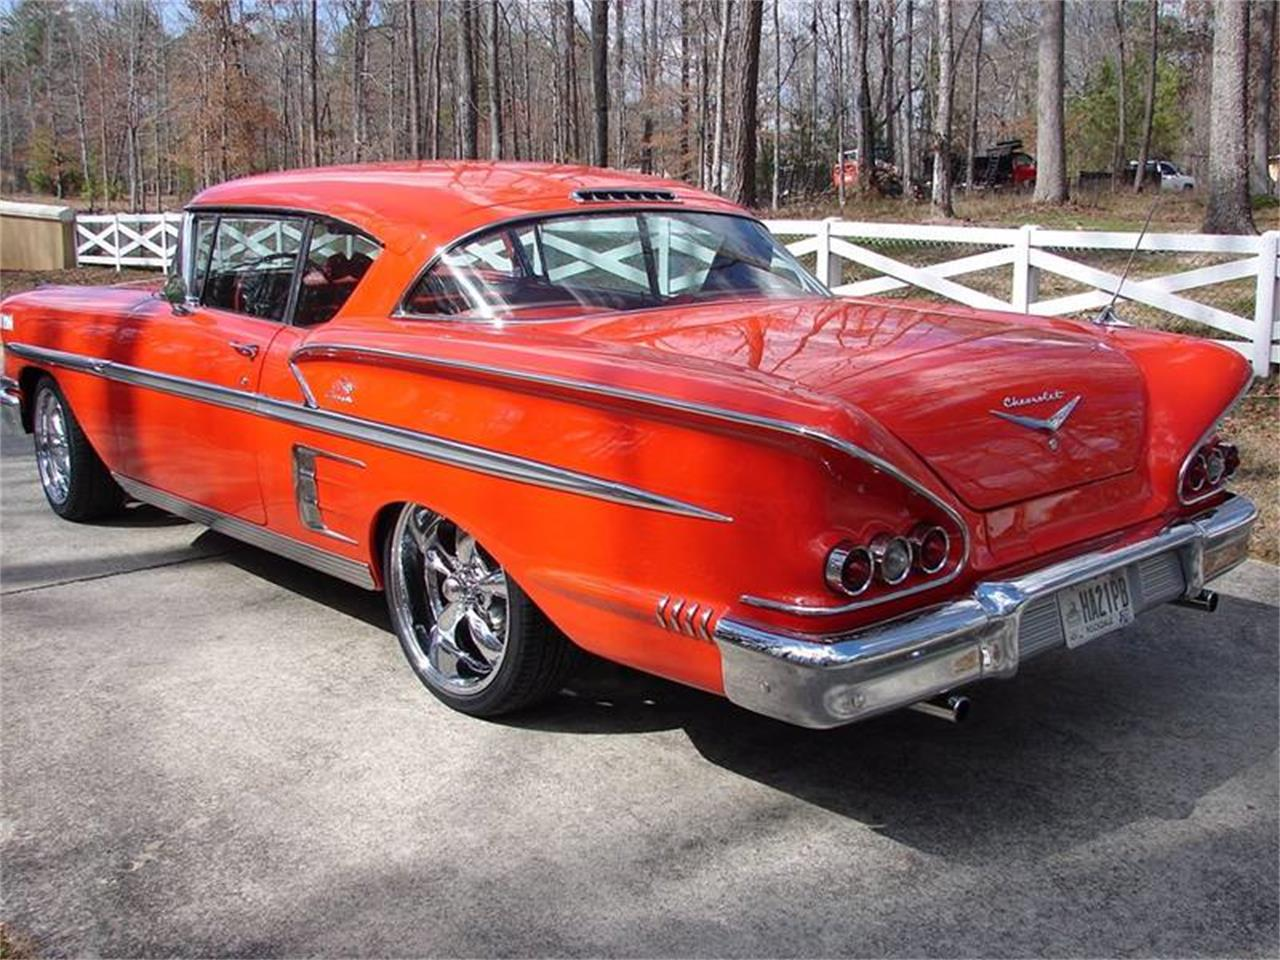 Large Picture of '58 Chevrolet Impala - $49,500.00 - MG1I